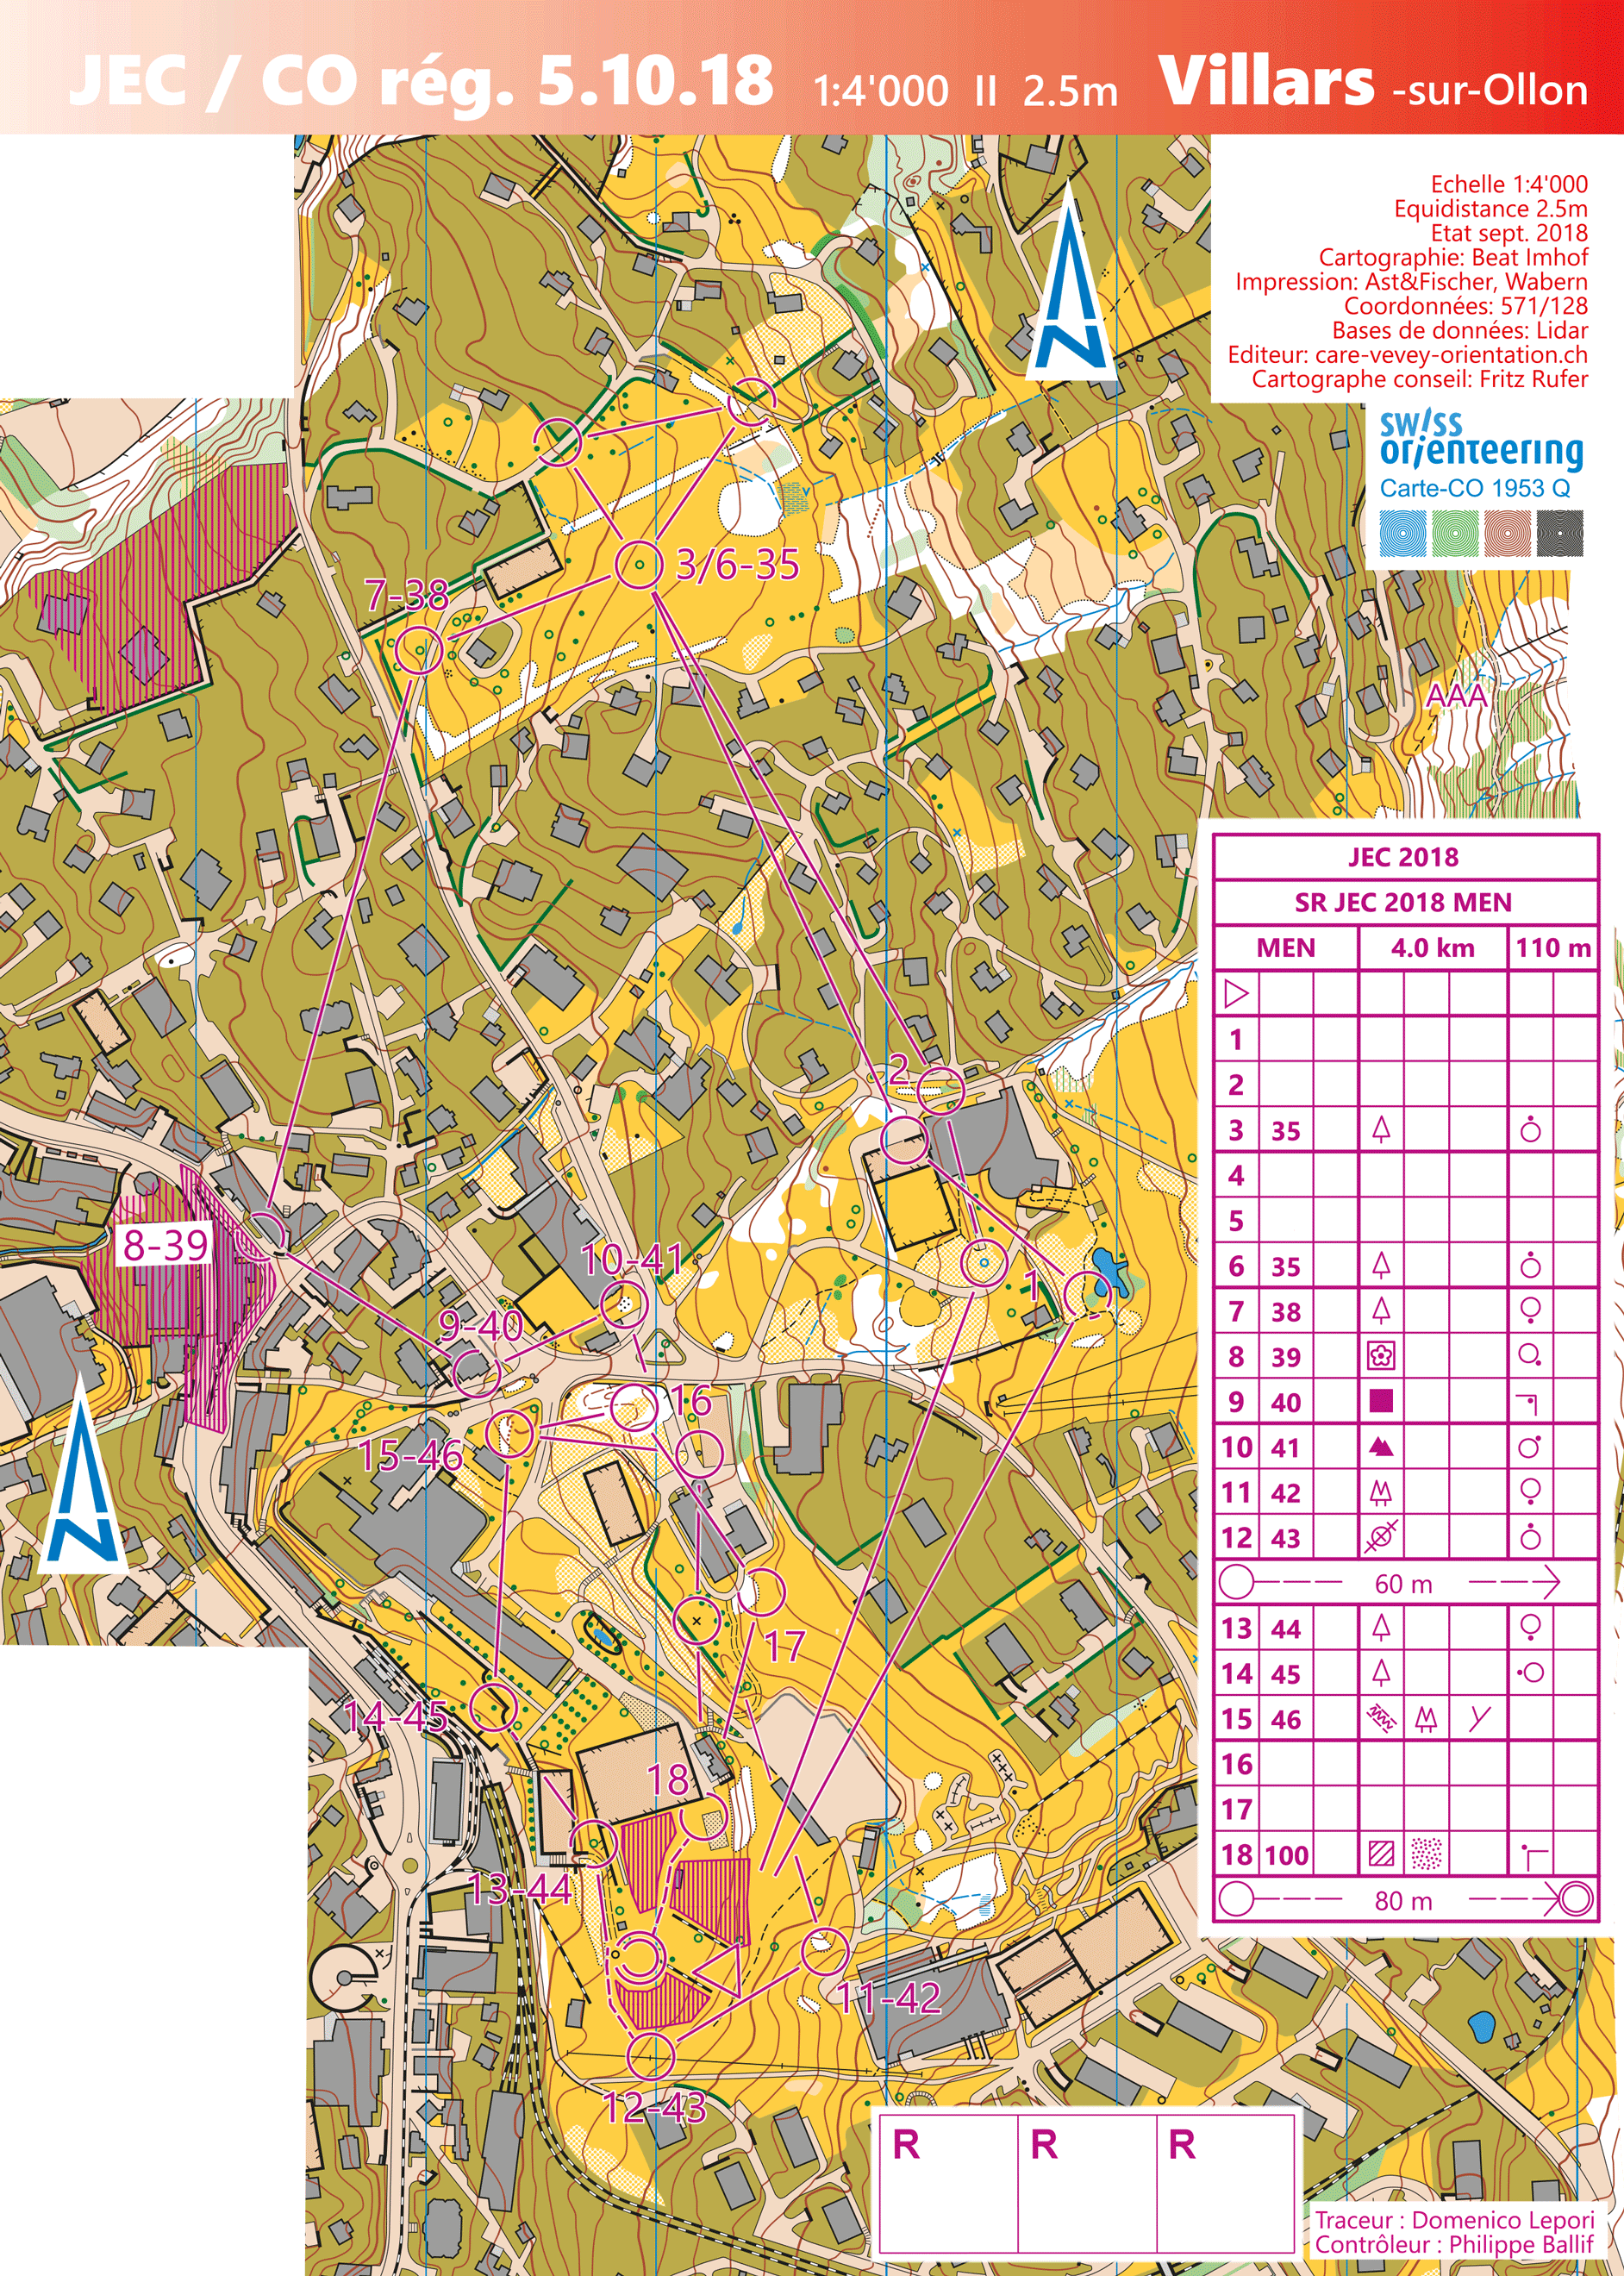 Junior European Cup - Relais sprint (05-10-2018)